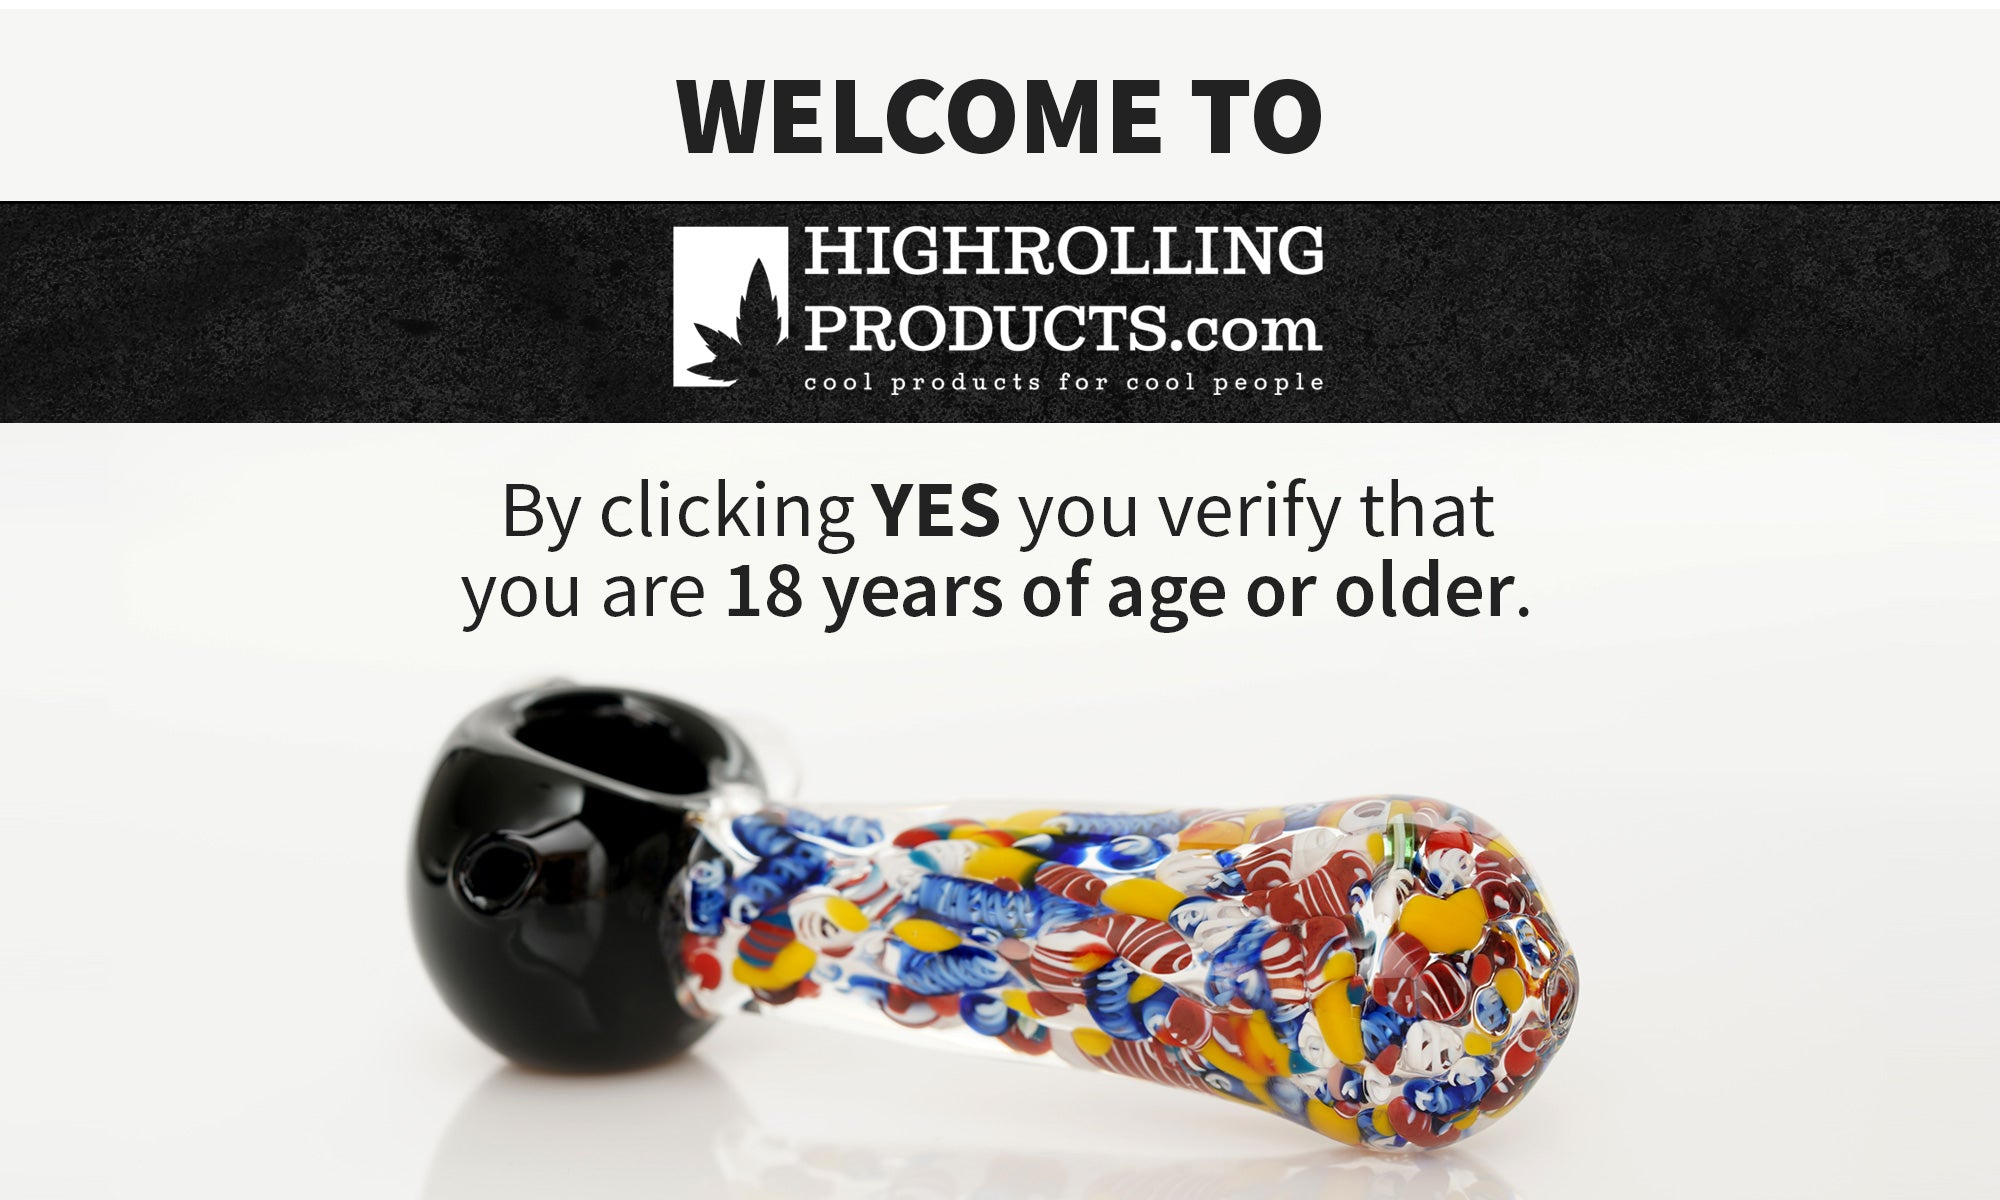 highrollingproducts.com